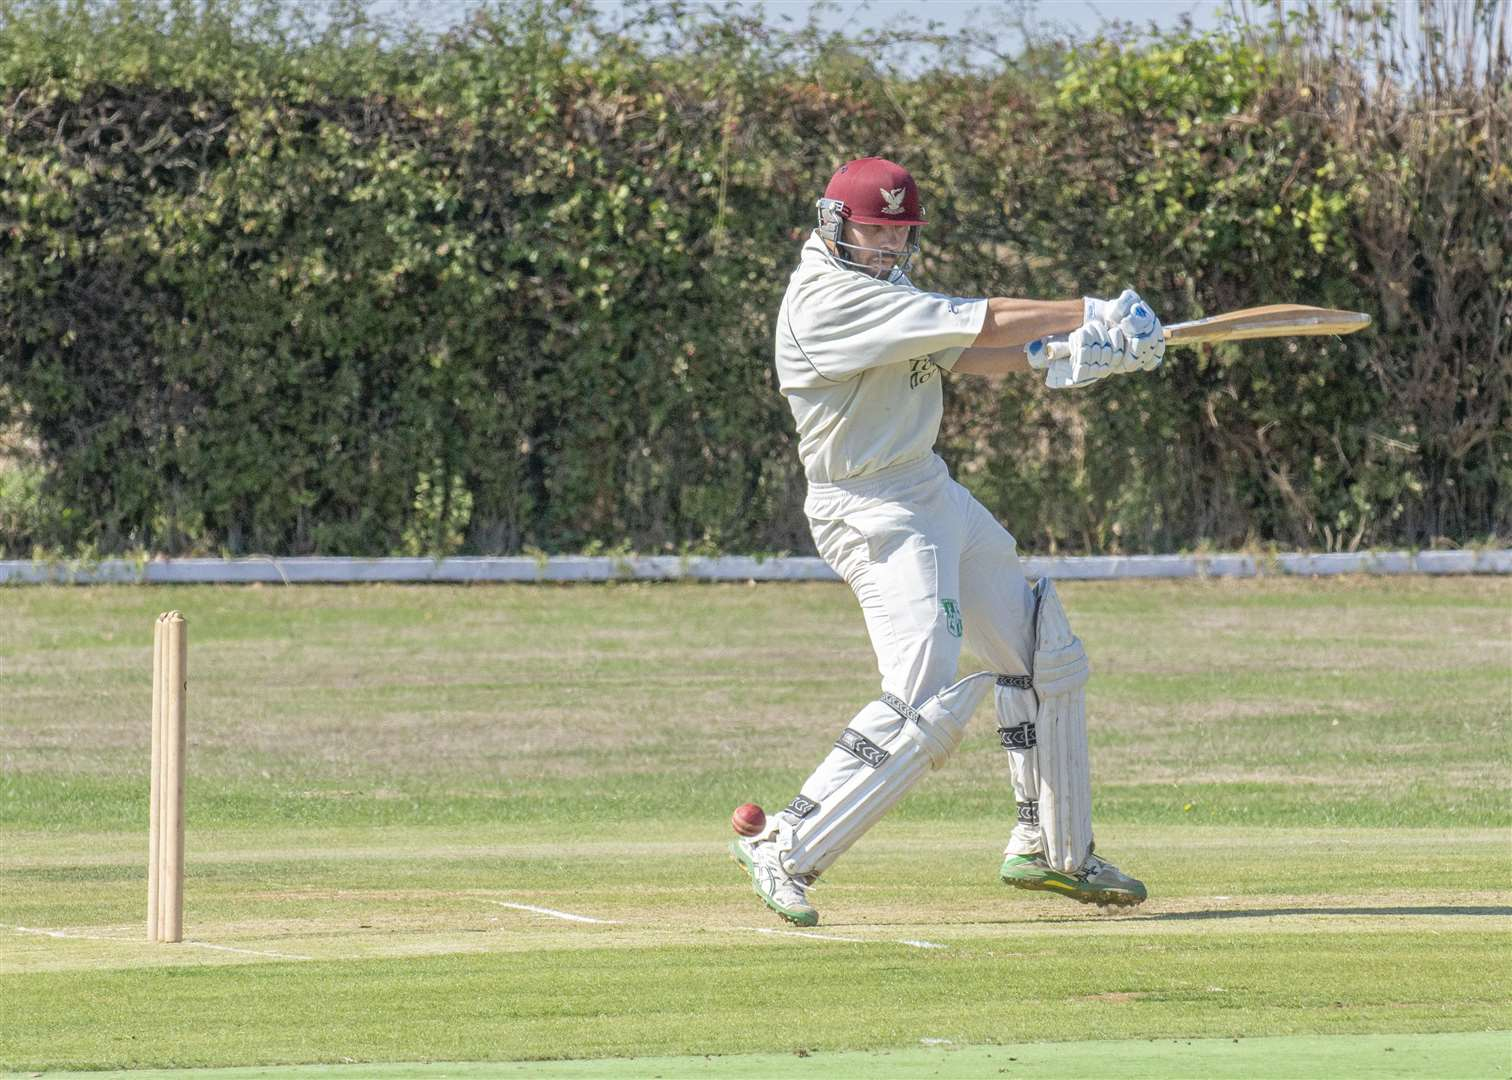 Action from Uppingham's victory at Uffington in Division Two of the Rutland League on Sunday. Photo: LEE HELLWING (3931509)